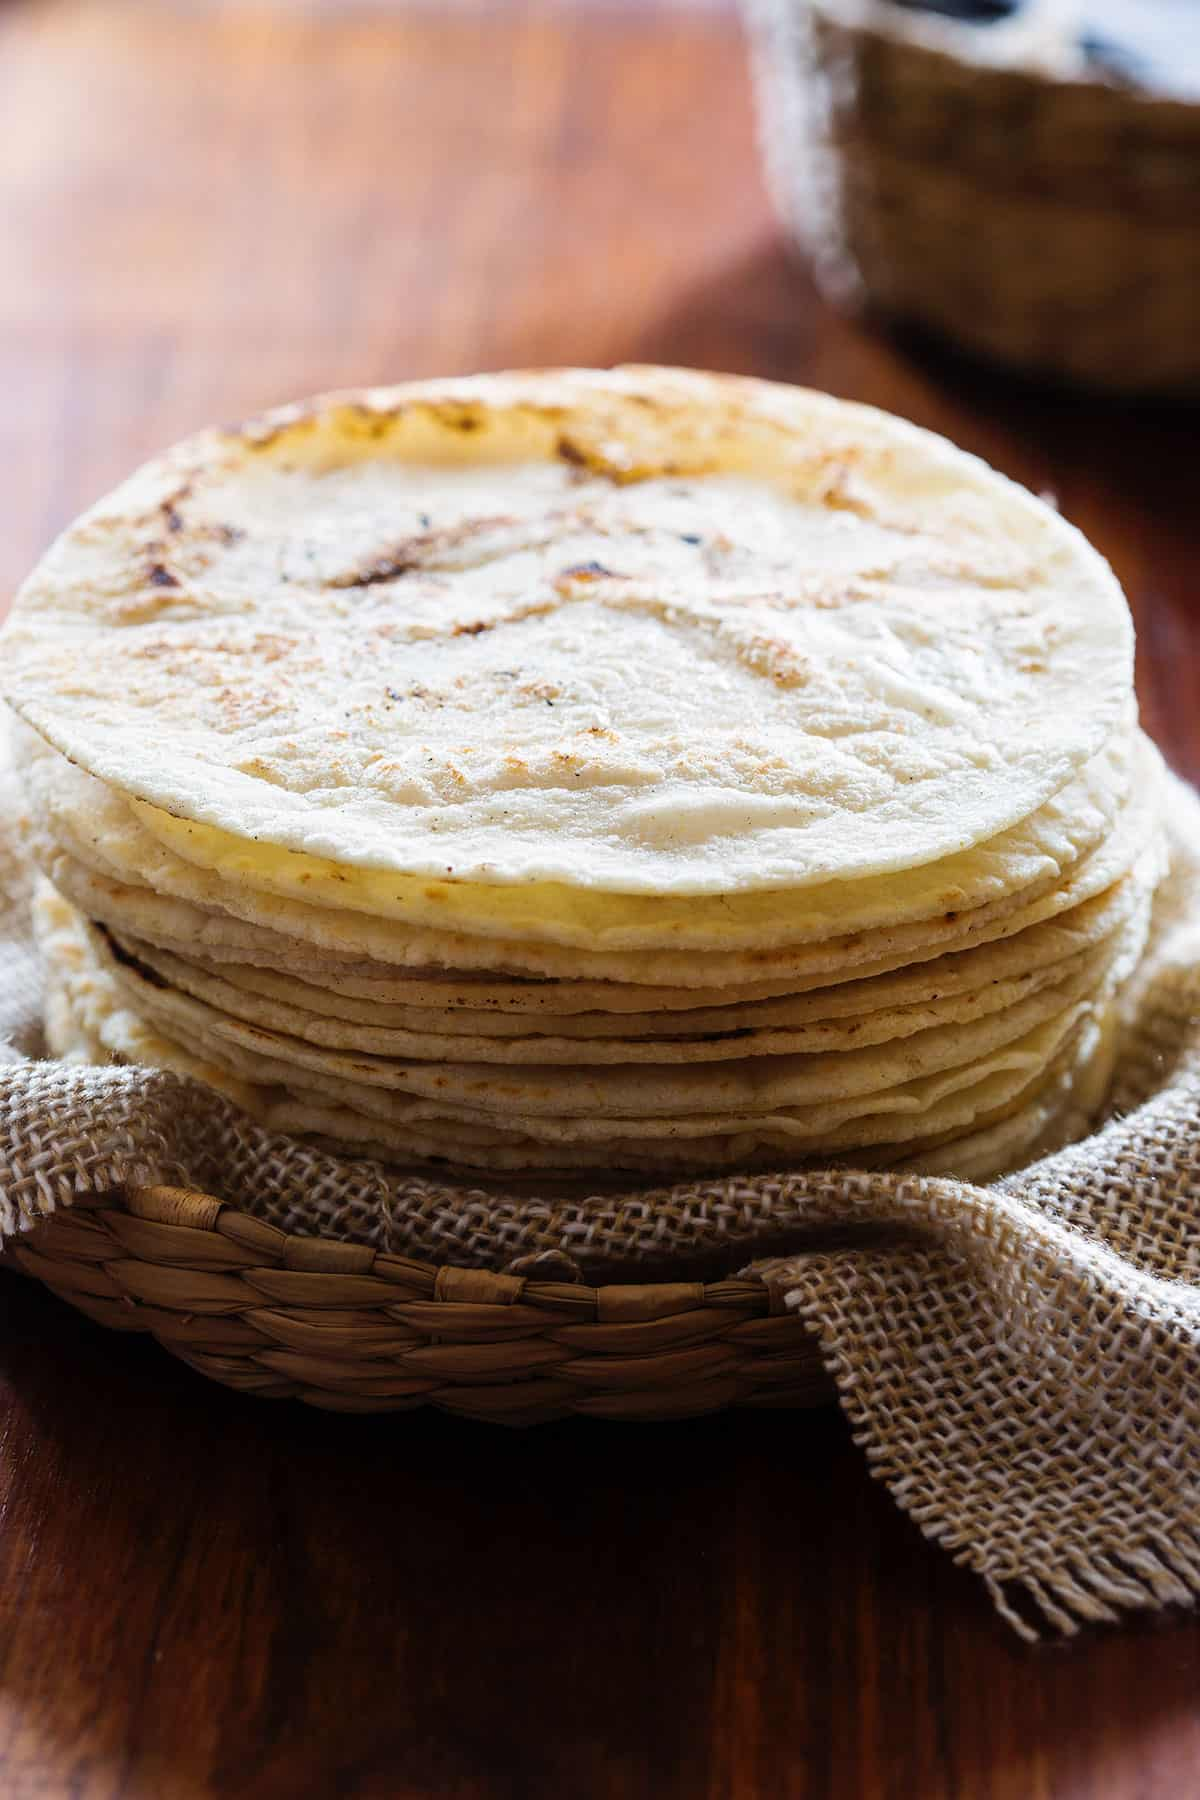 Gluten free corn tortillas on a basket.